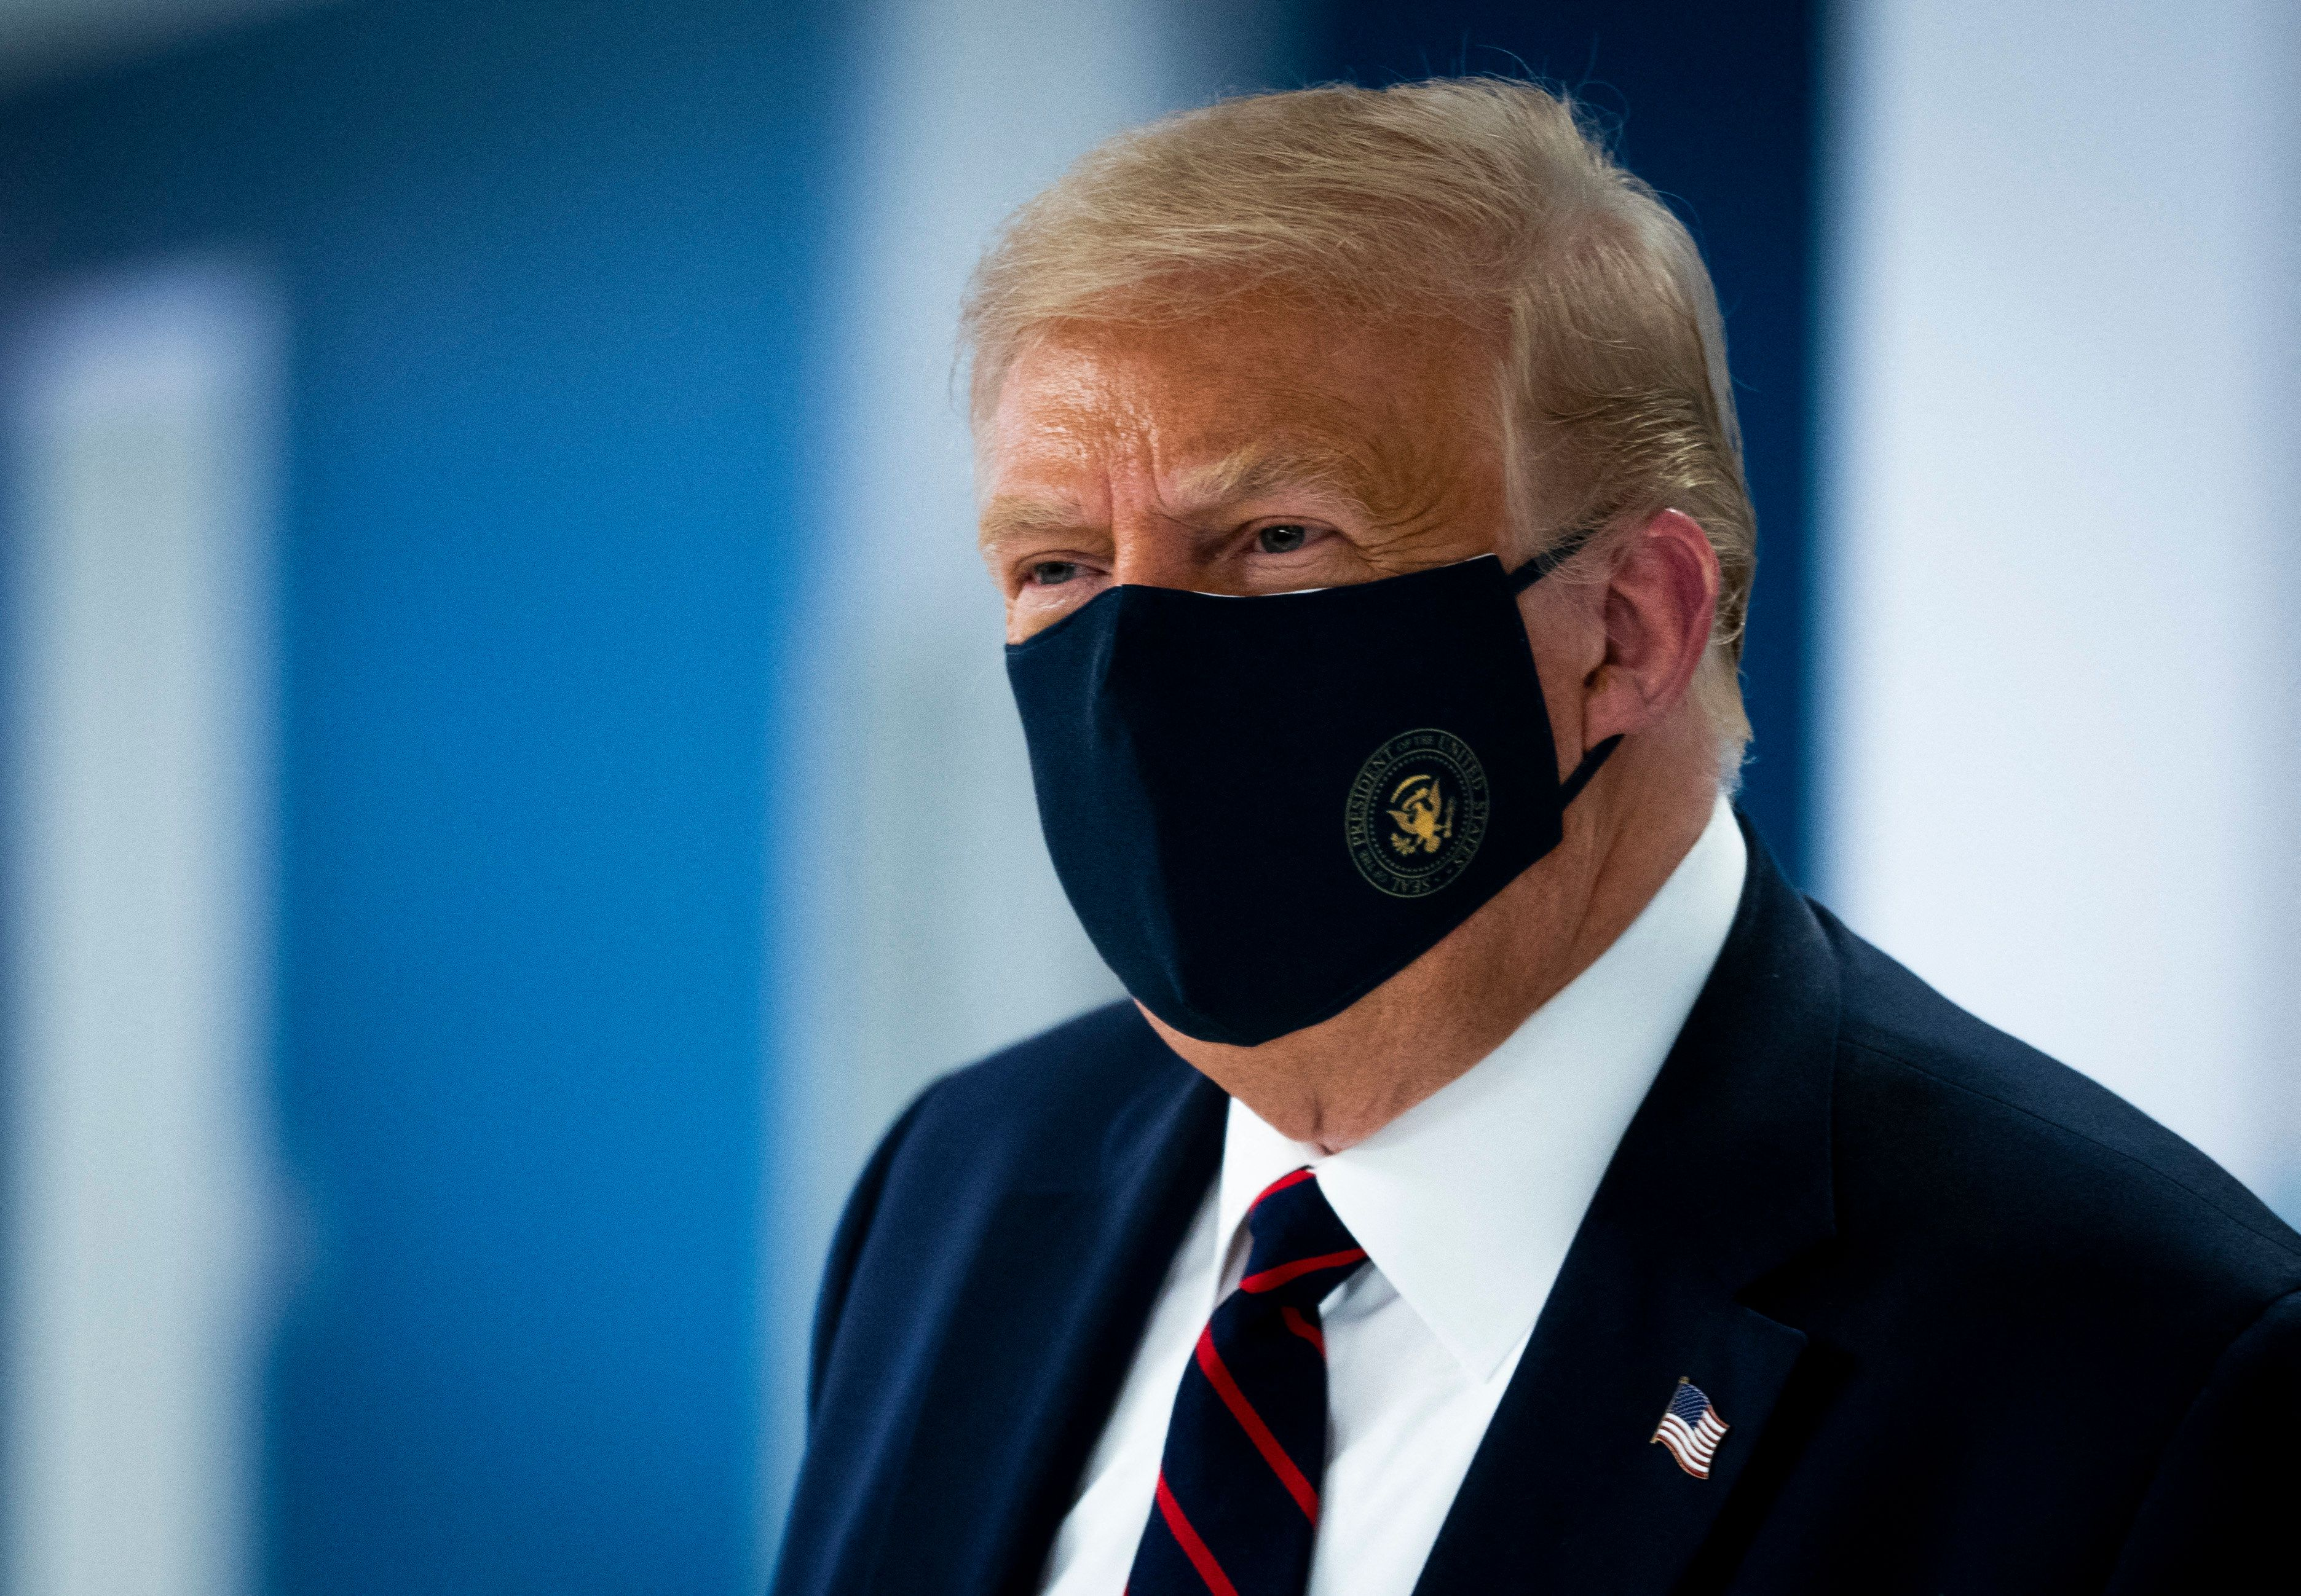 US President Donald Trump wearing a face mask against COVID-19. Reuters